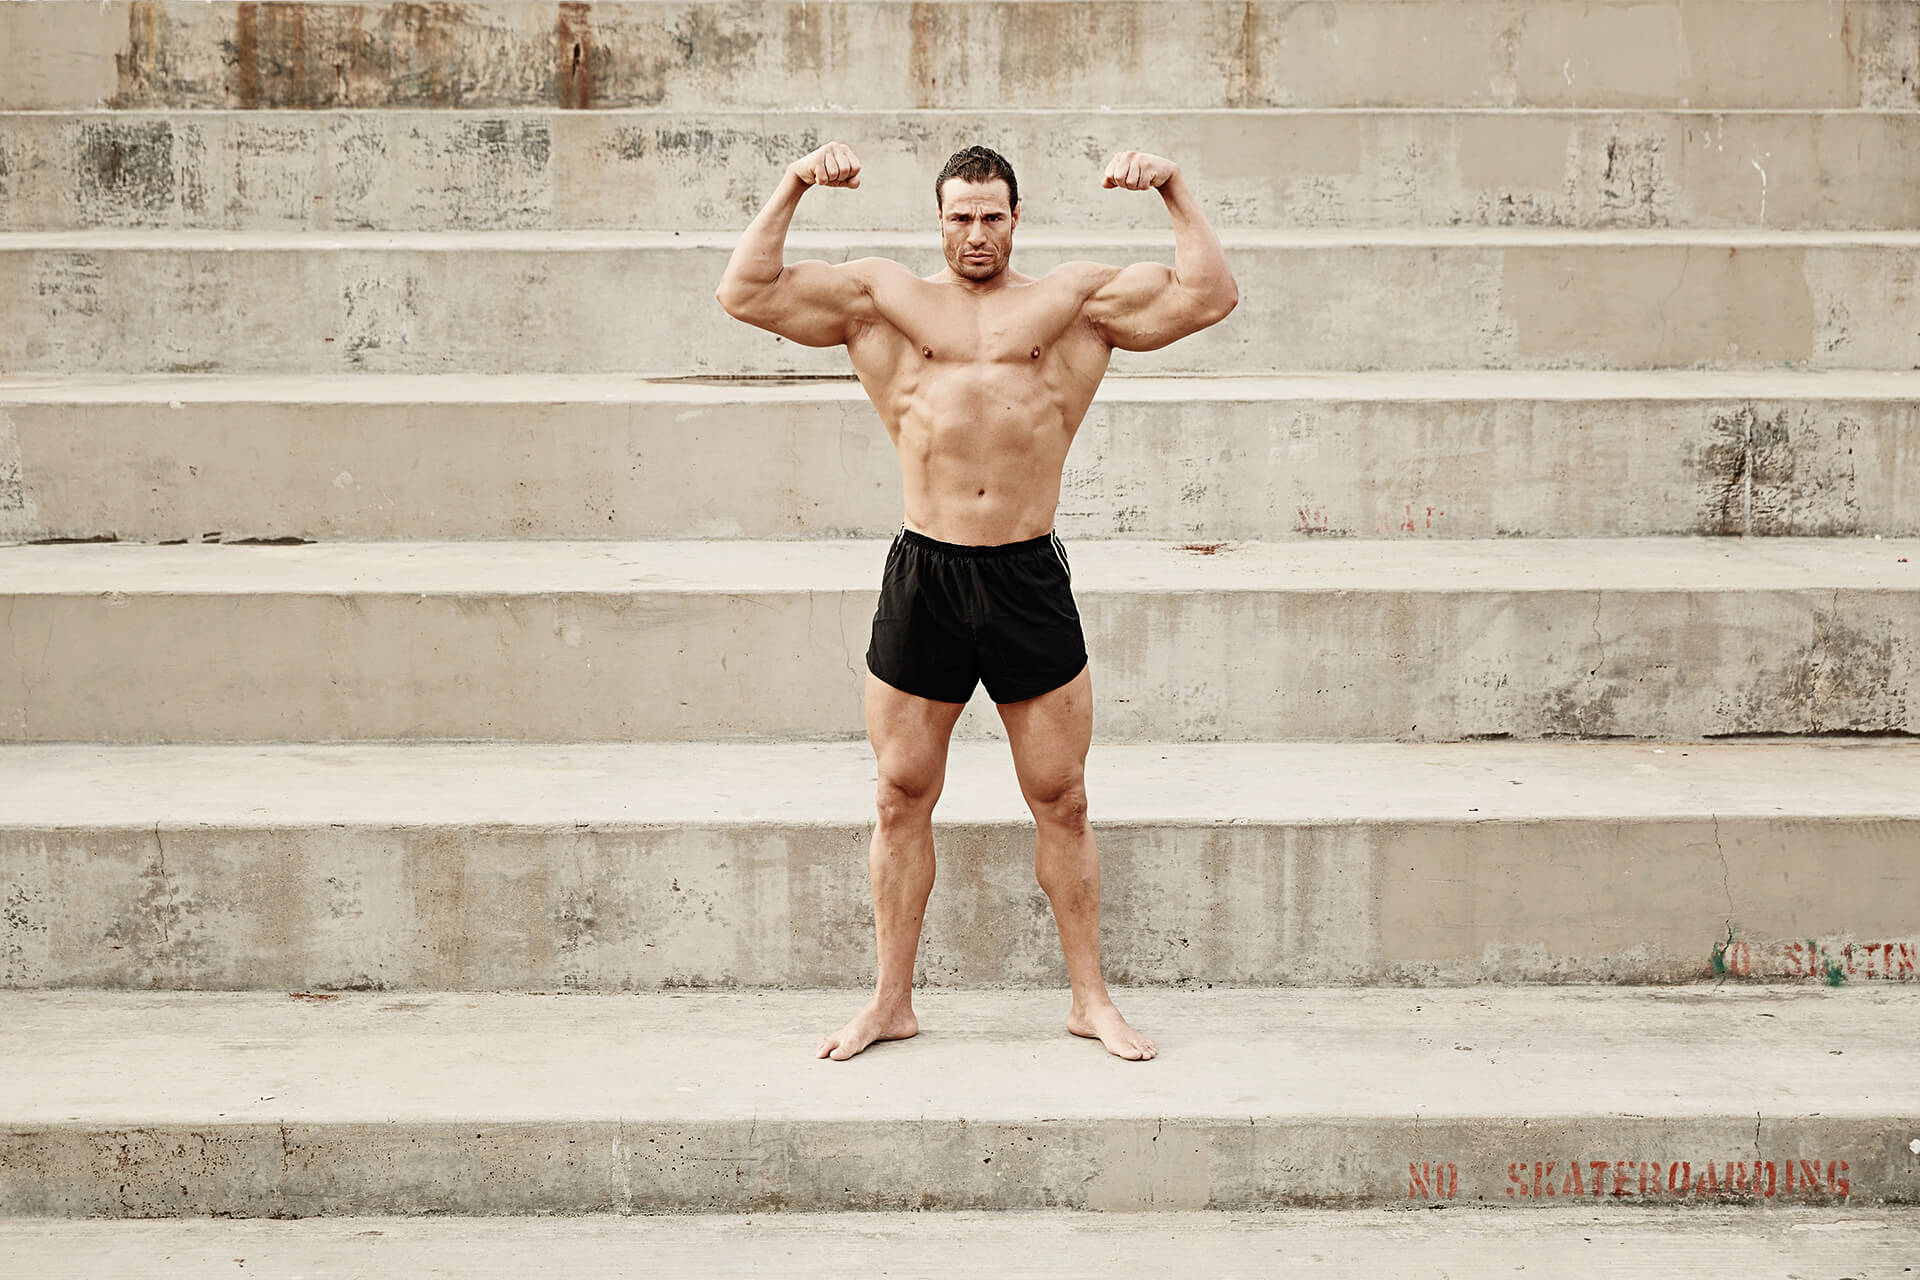 Unified Content, Unified Content Toronto, Aaron Cobb, Athletes, Body Builder, LA, Los Angeles, Muscle Beach, Beach, Workout, Fit, Body Builder, Ripped, Shredded,